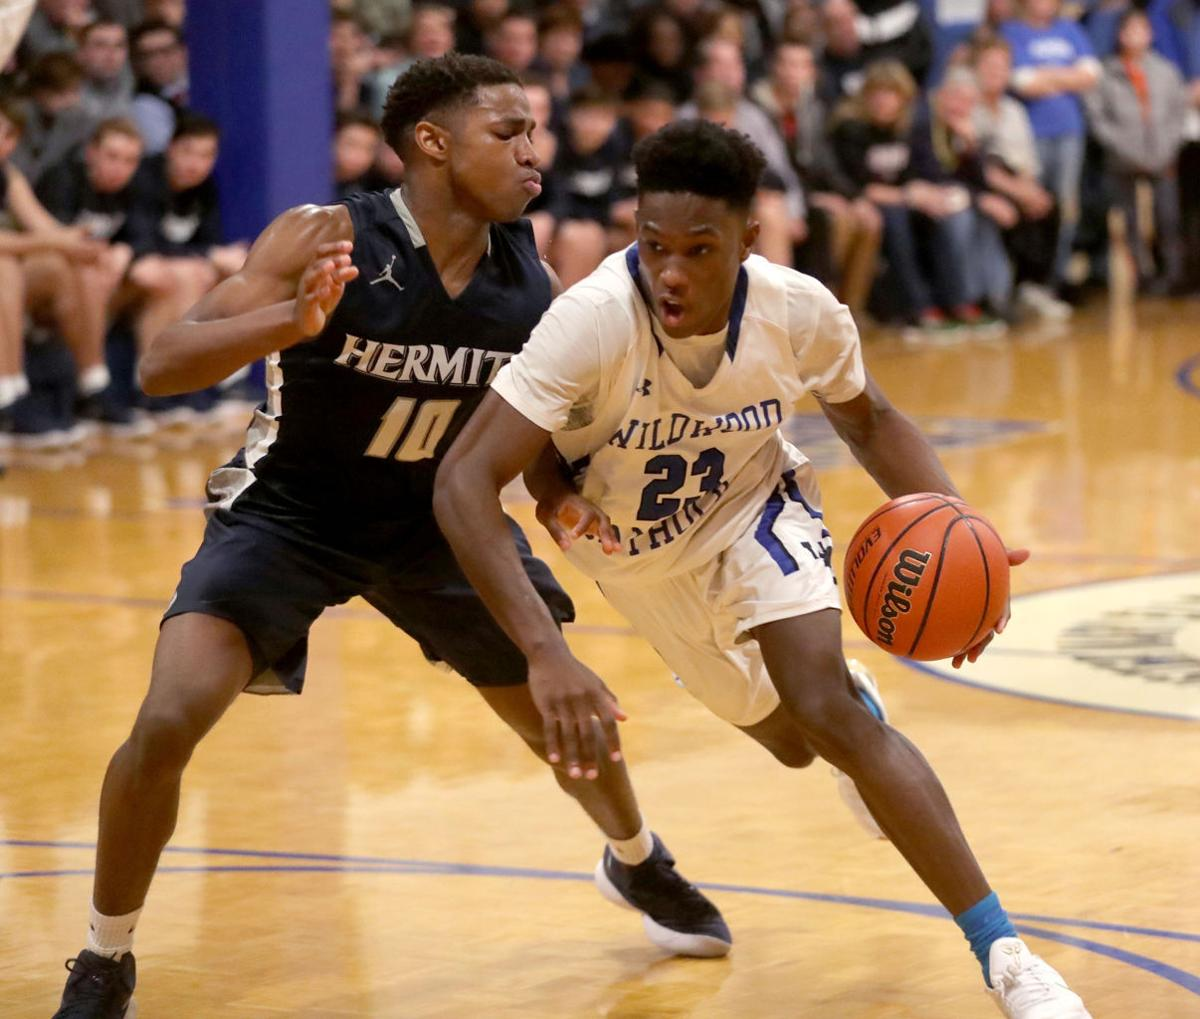 Big Weekend In High School Basketball: Shoot Down Cancer Classic At St. Augustine This Weekend